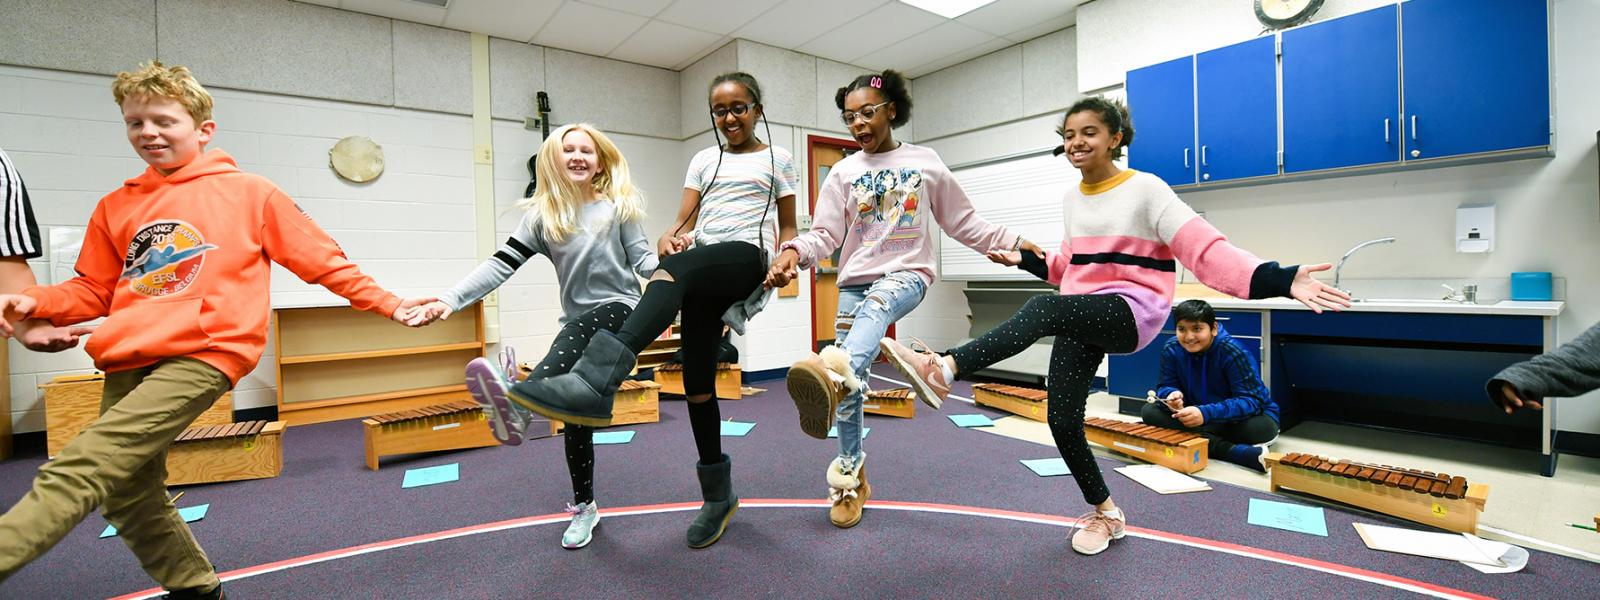 Freedom Hill Elementary School students blend music and physical education during a unit on dance.